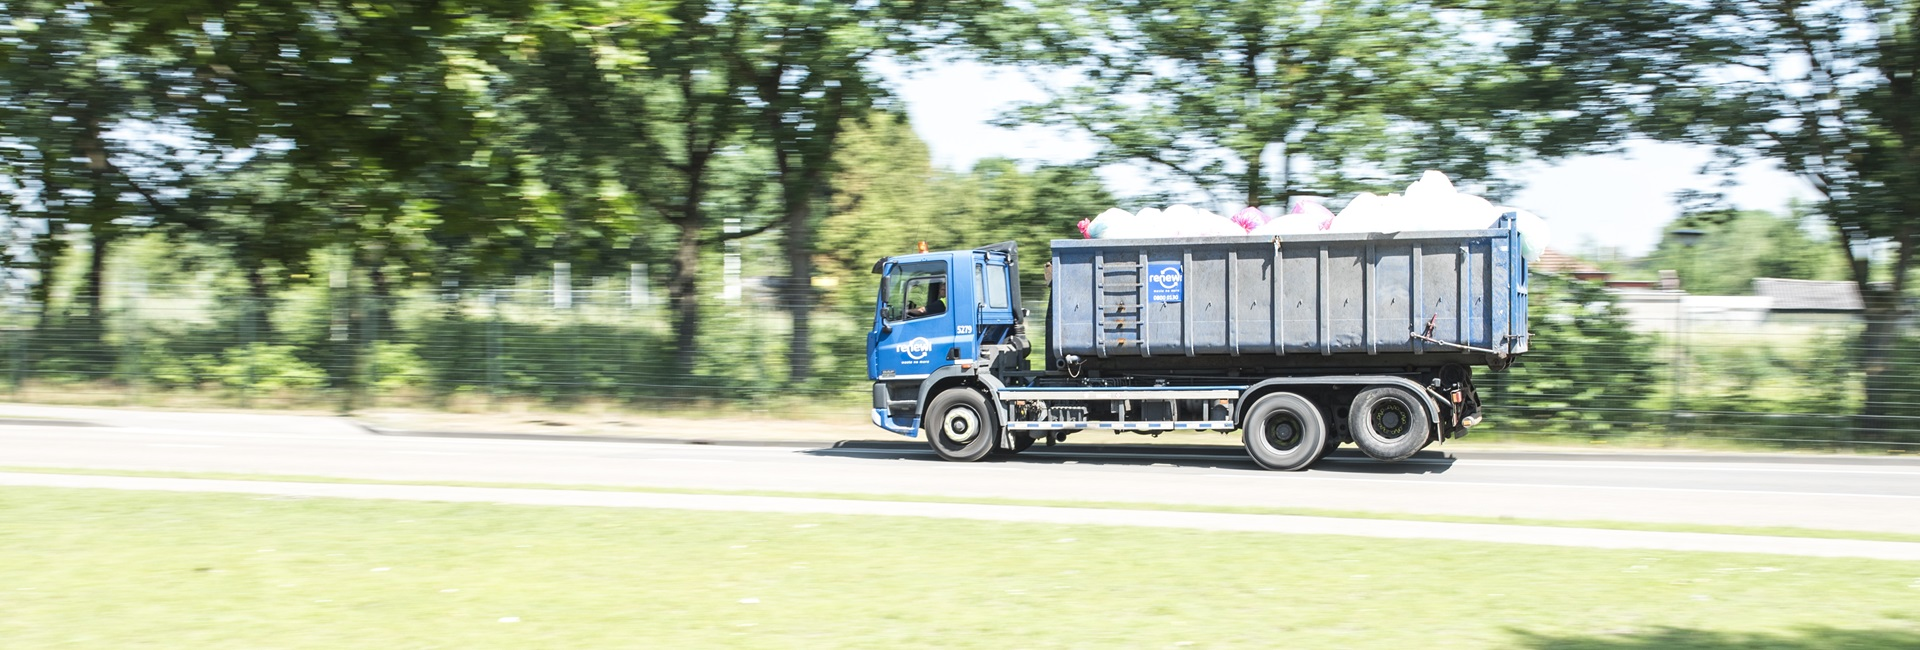 DAF-Environment-Waste-Collection-Truck-Renewi